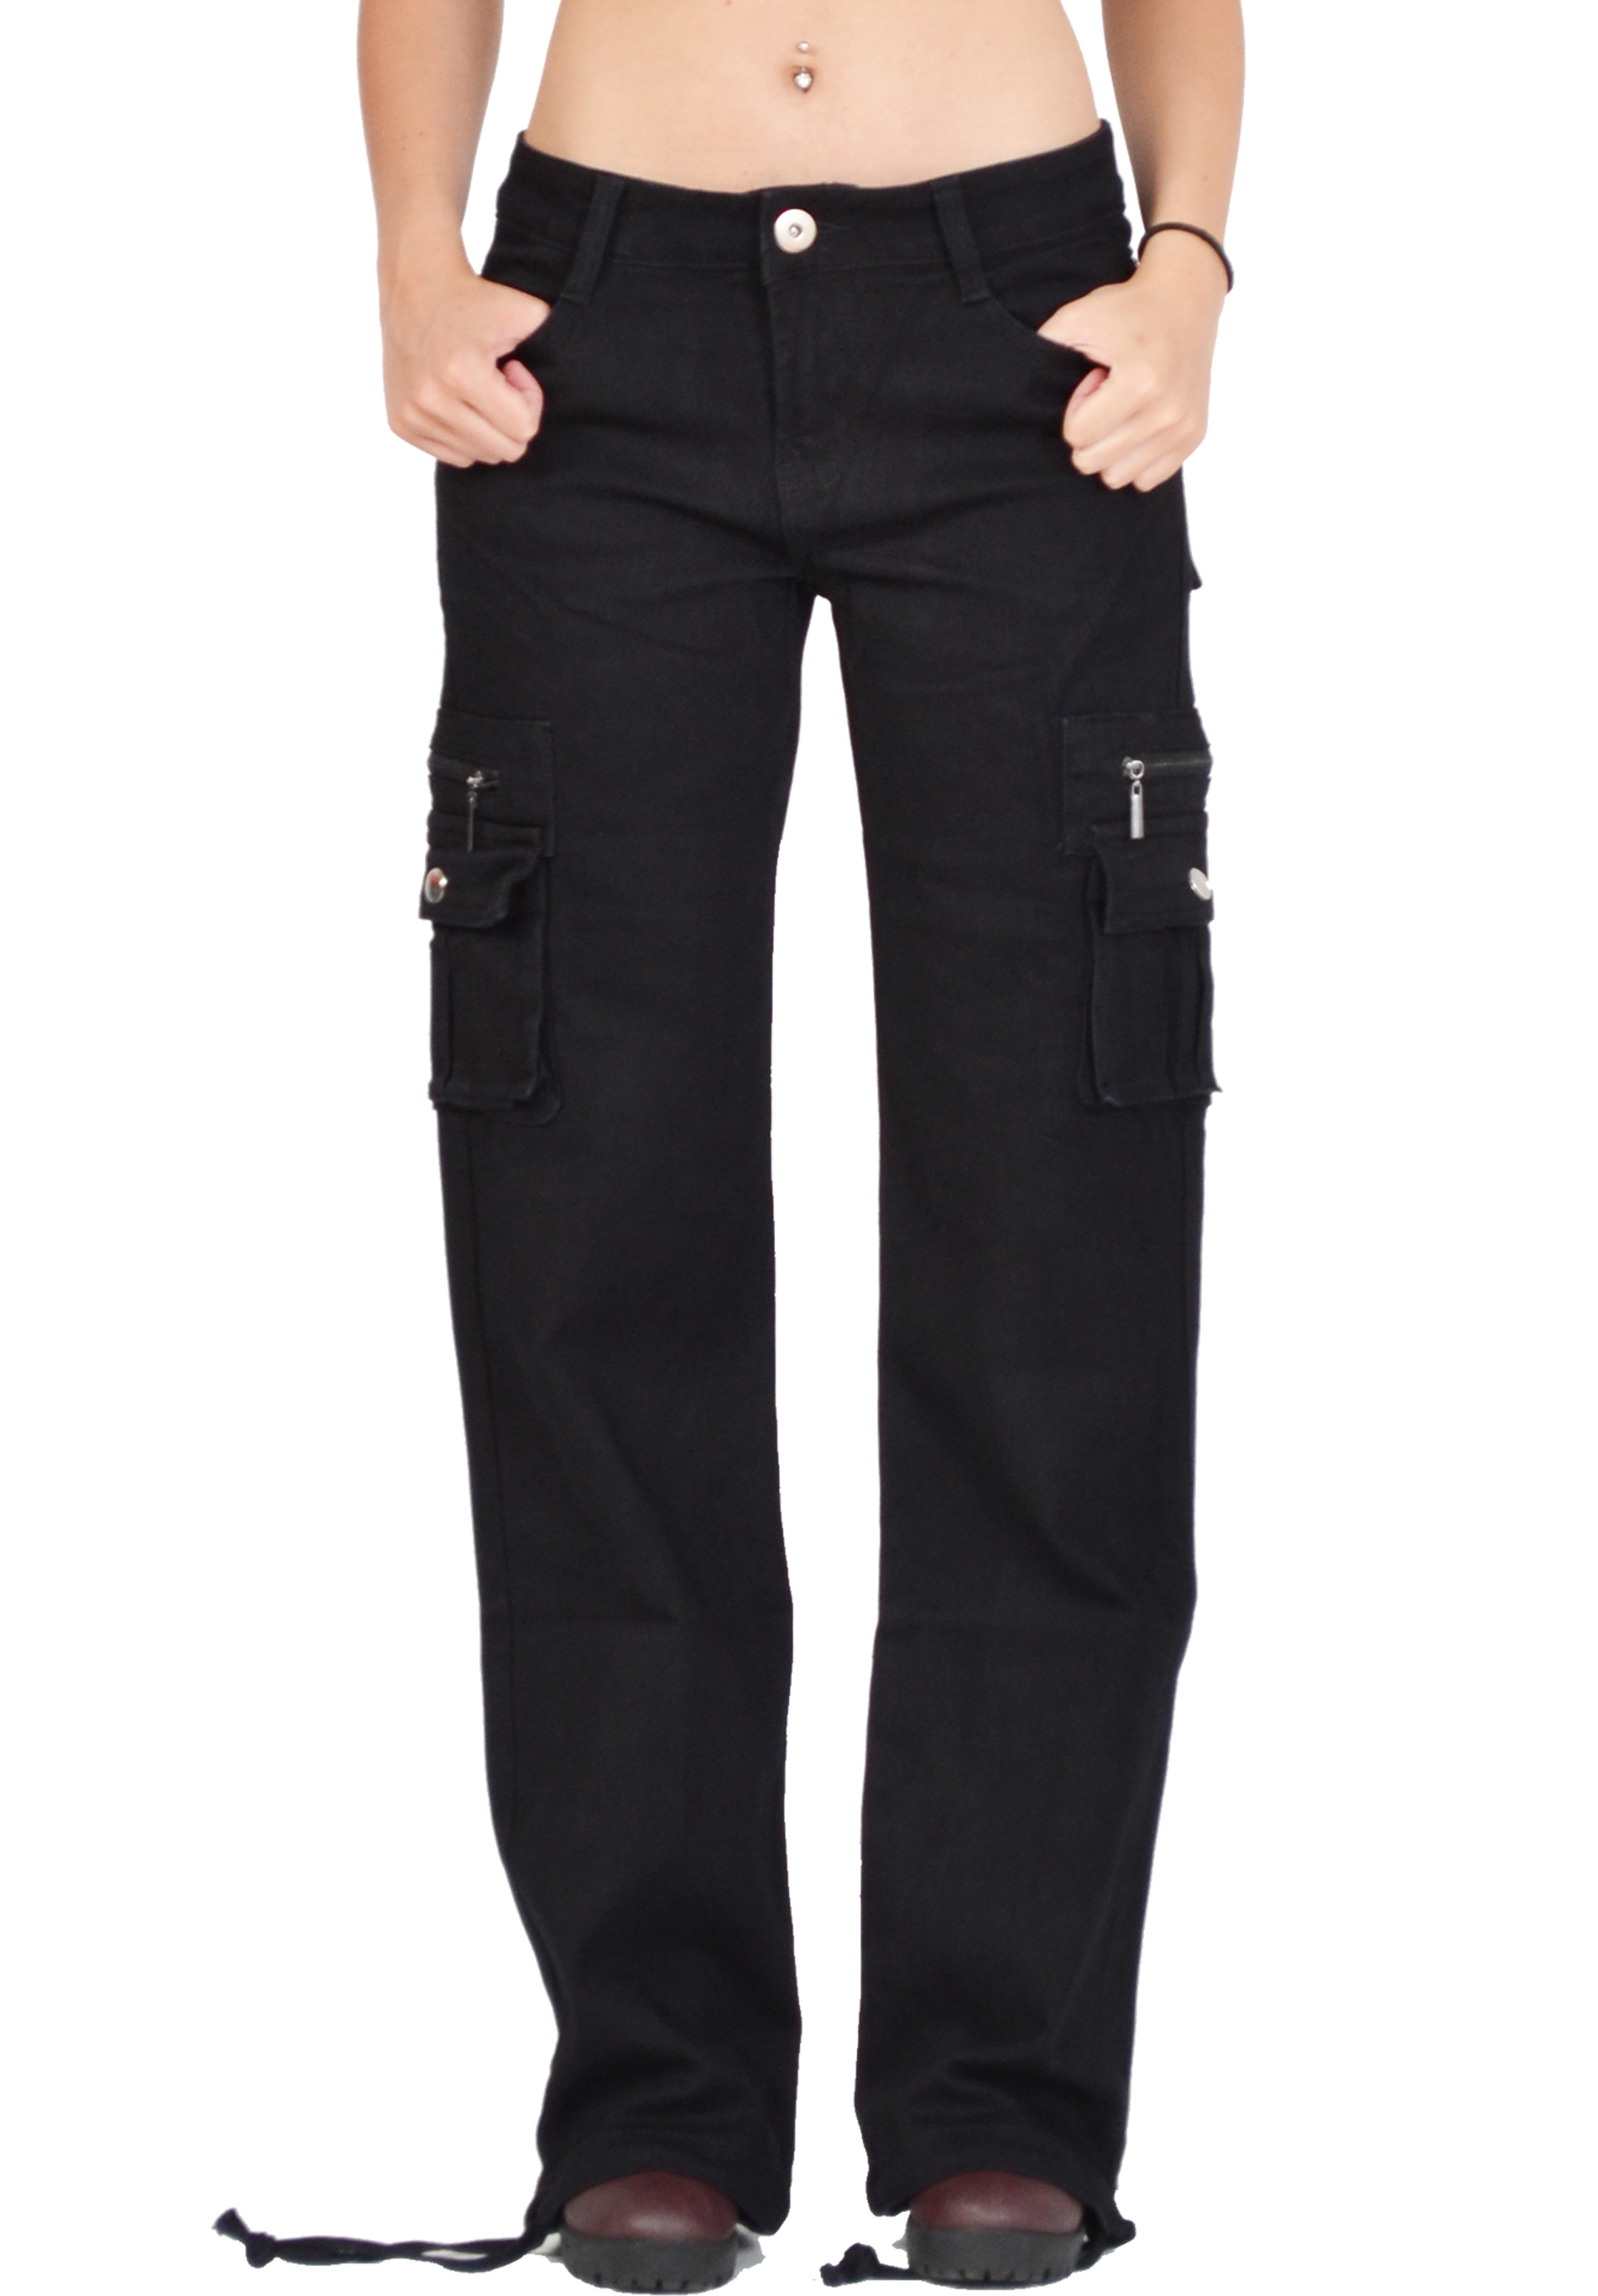 womens black cargo pants photo - 1